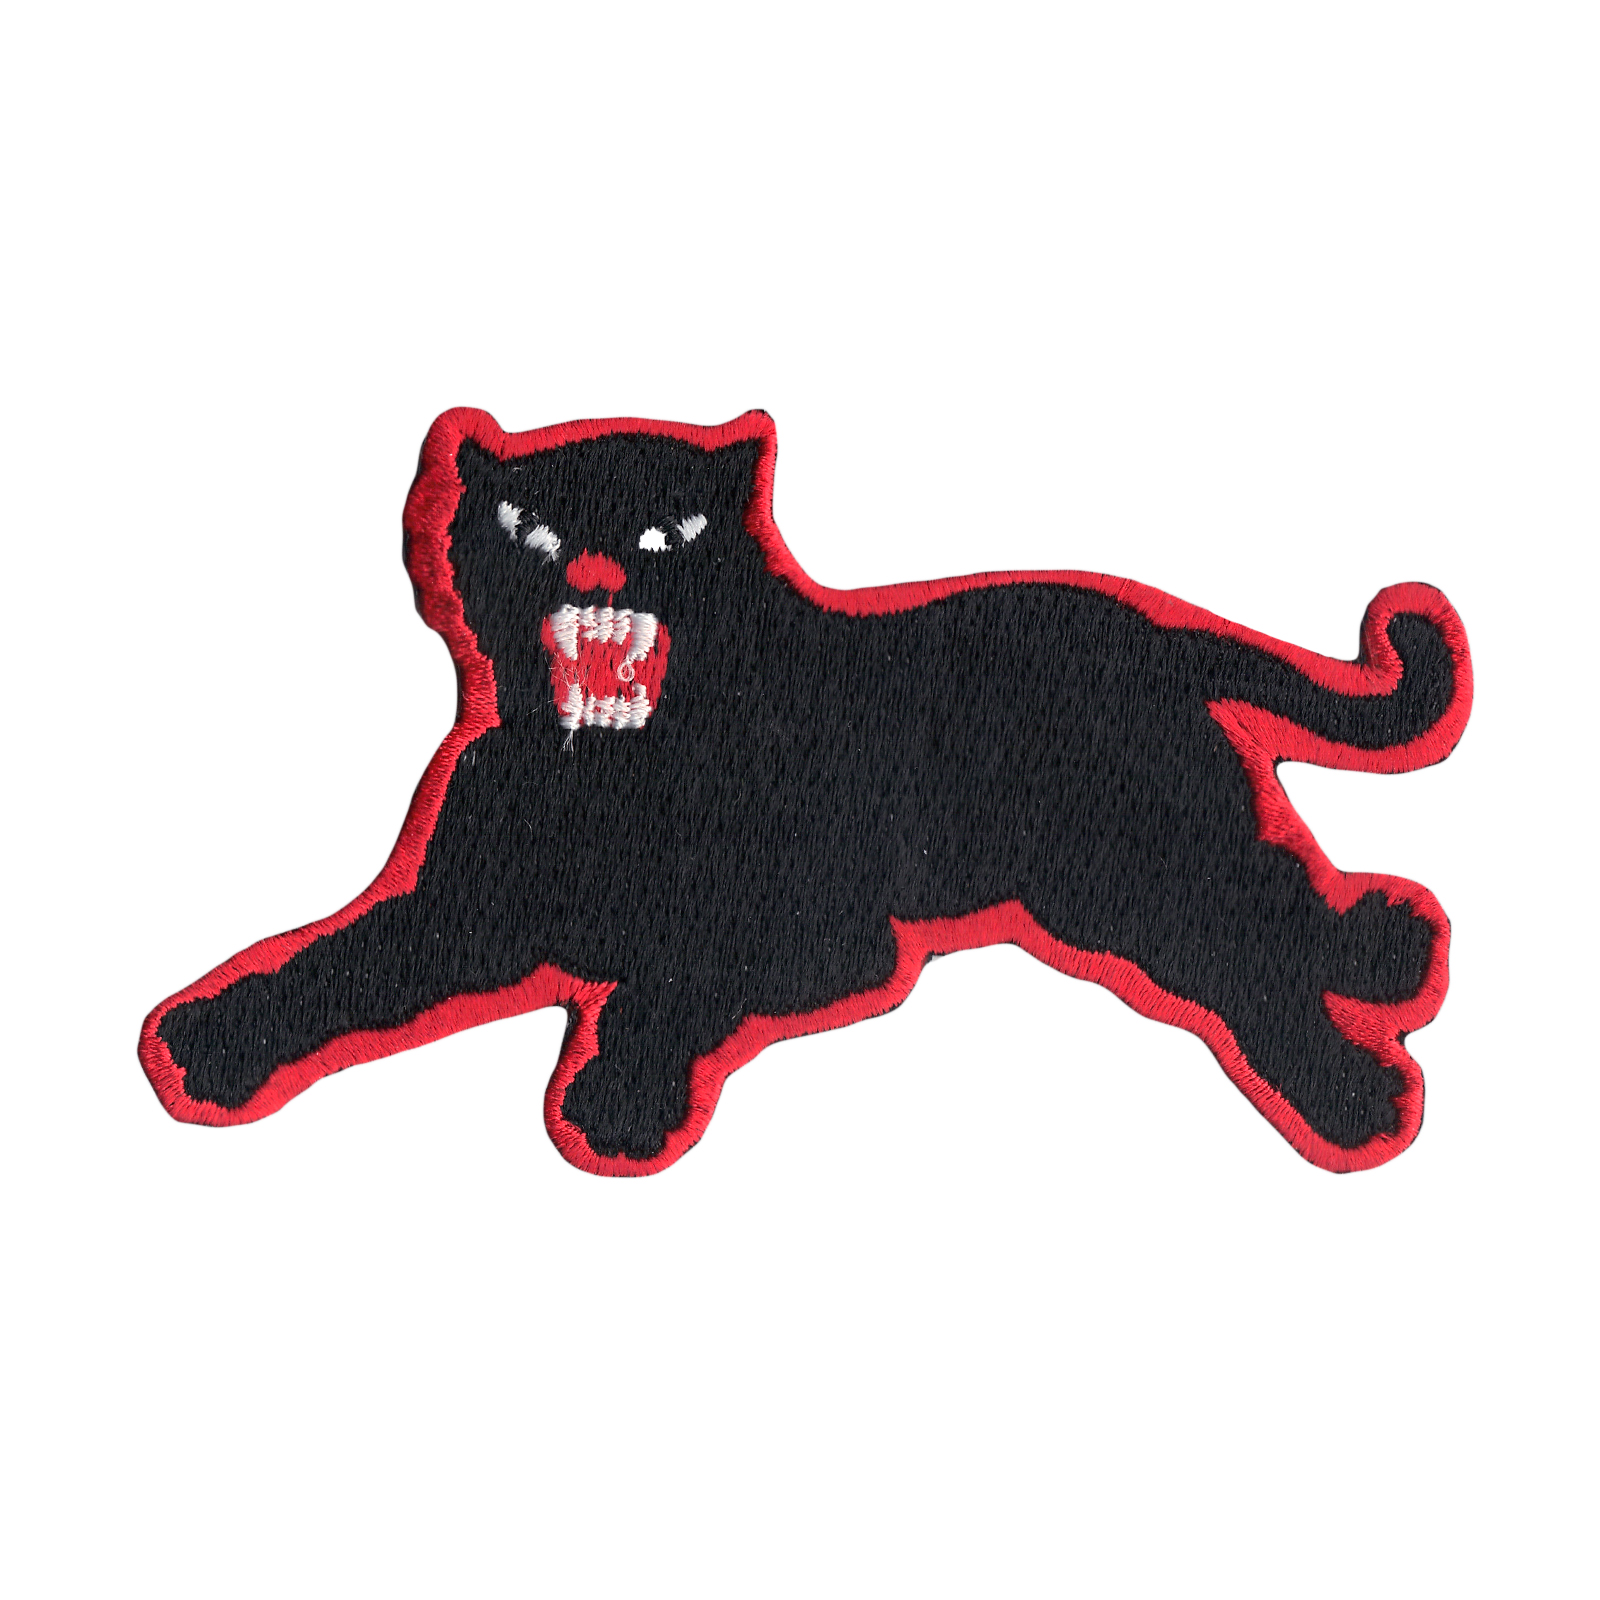 Panther Red Border Iron On Applique Patch